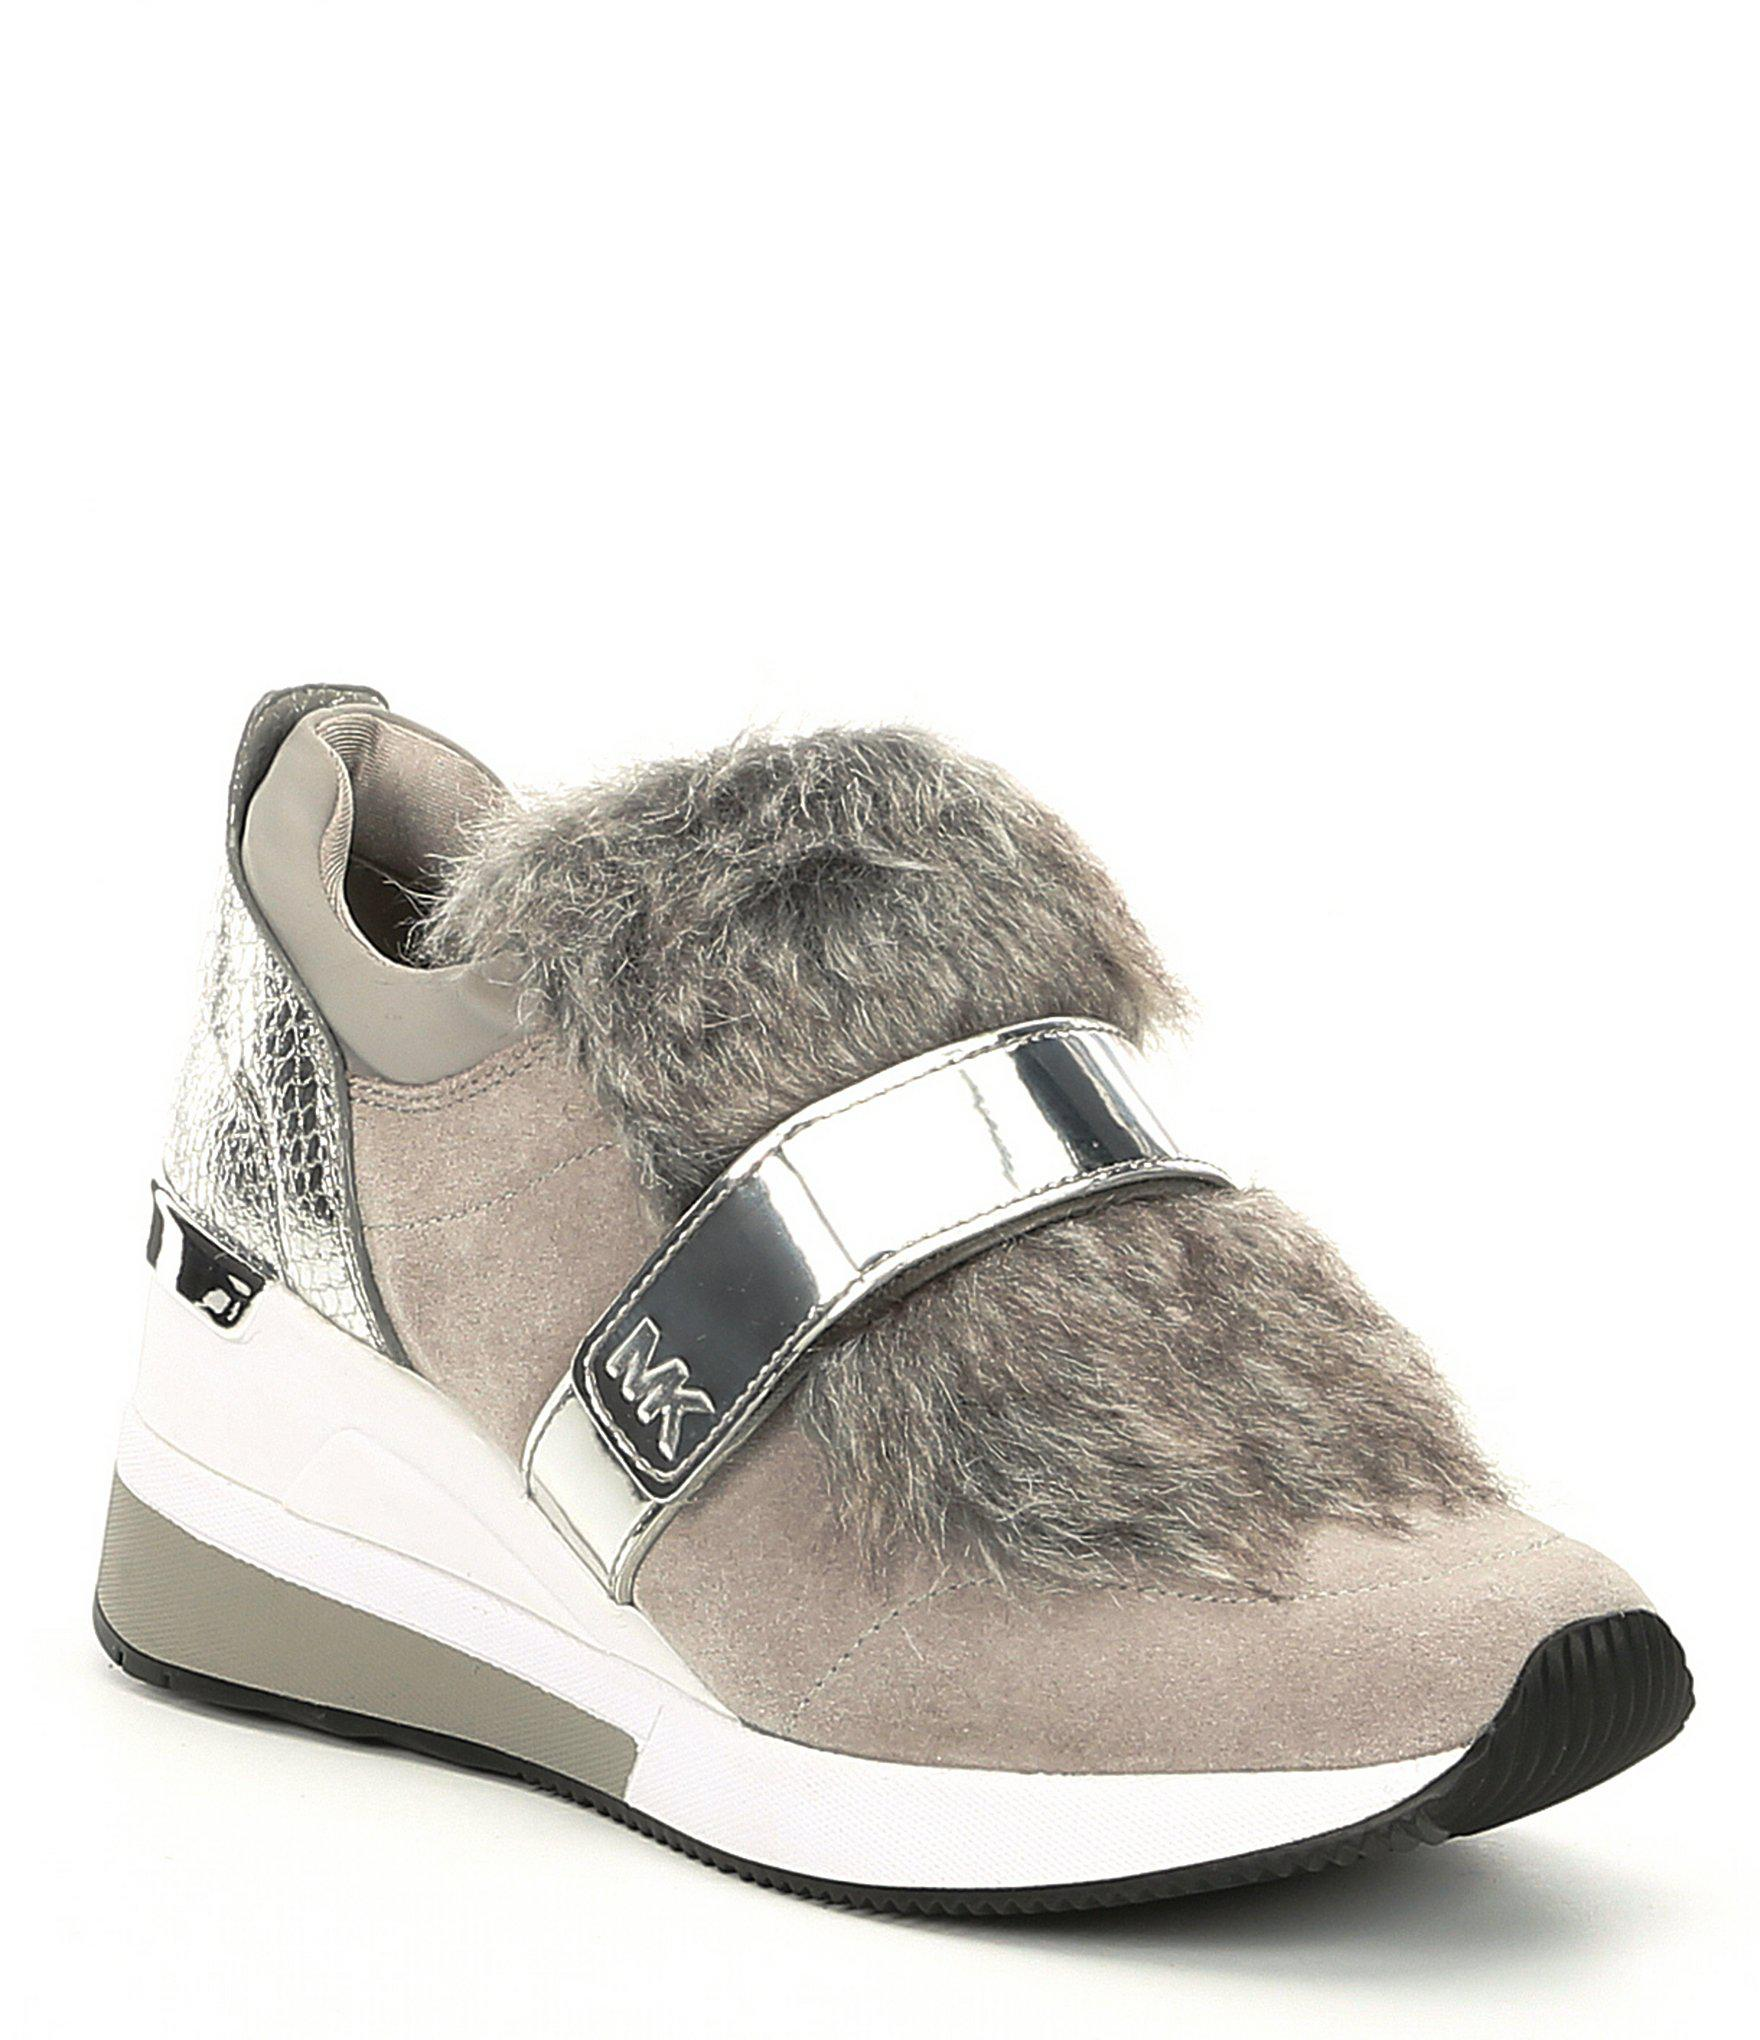 bc1f5dfdfa9 Lyst - MICHAEL Michael Kors Maven Faux Fur Trainer Sneakers in Gray